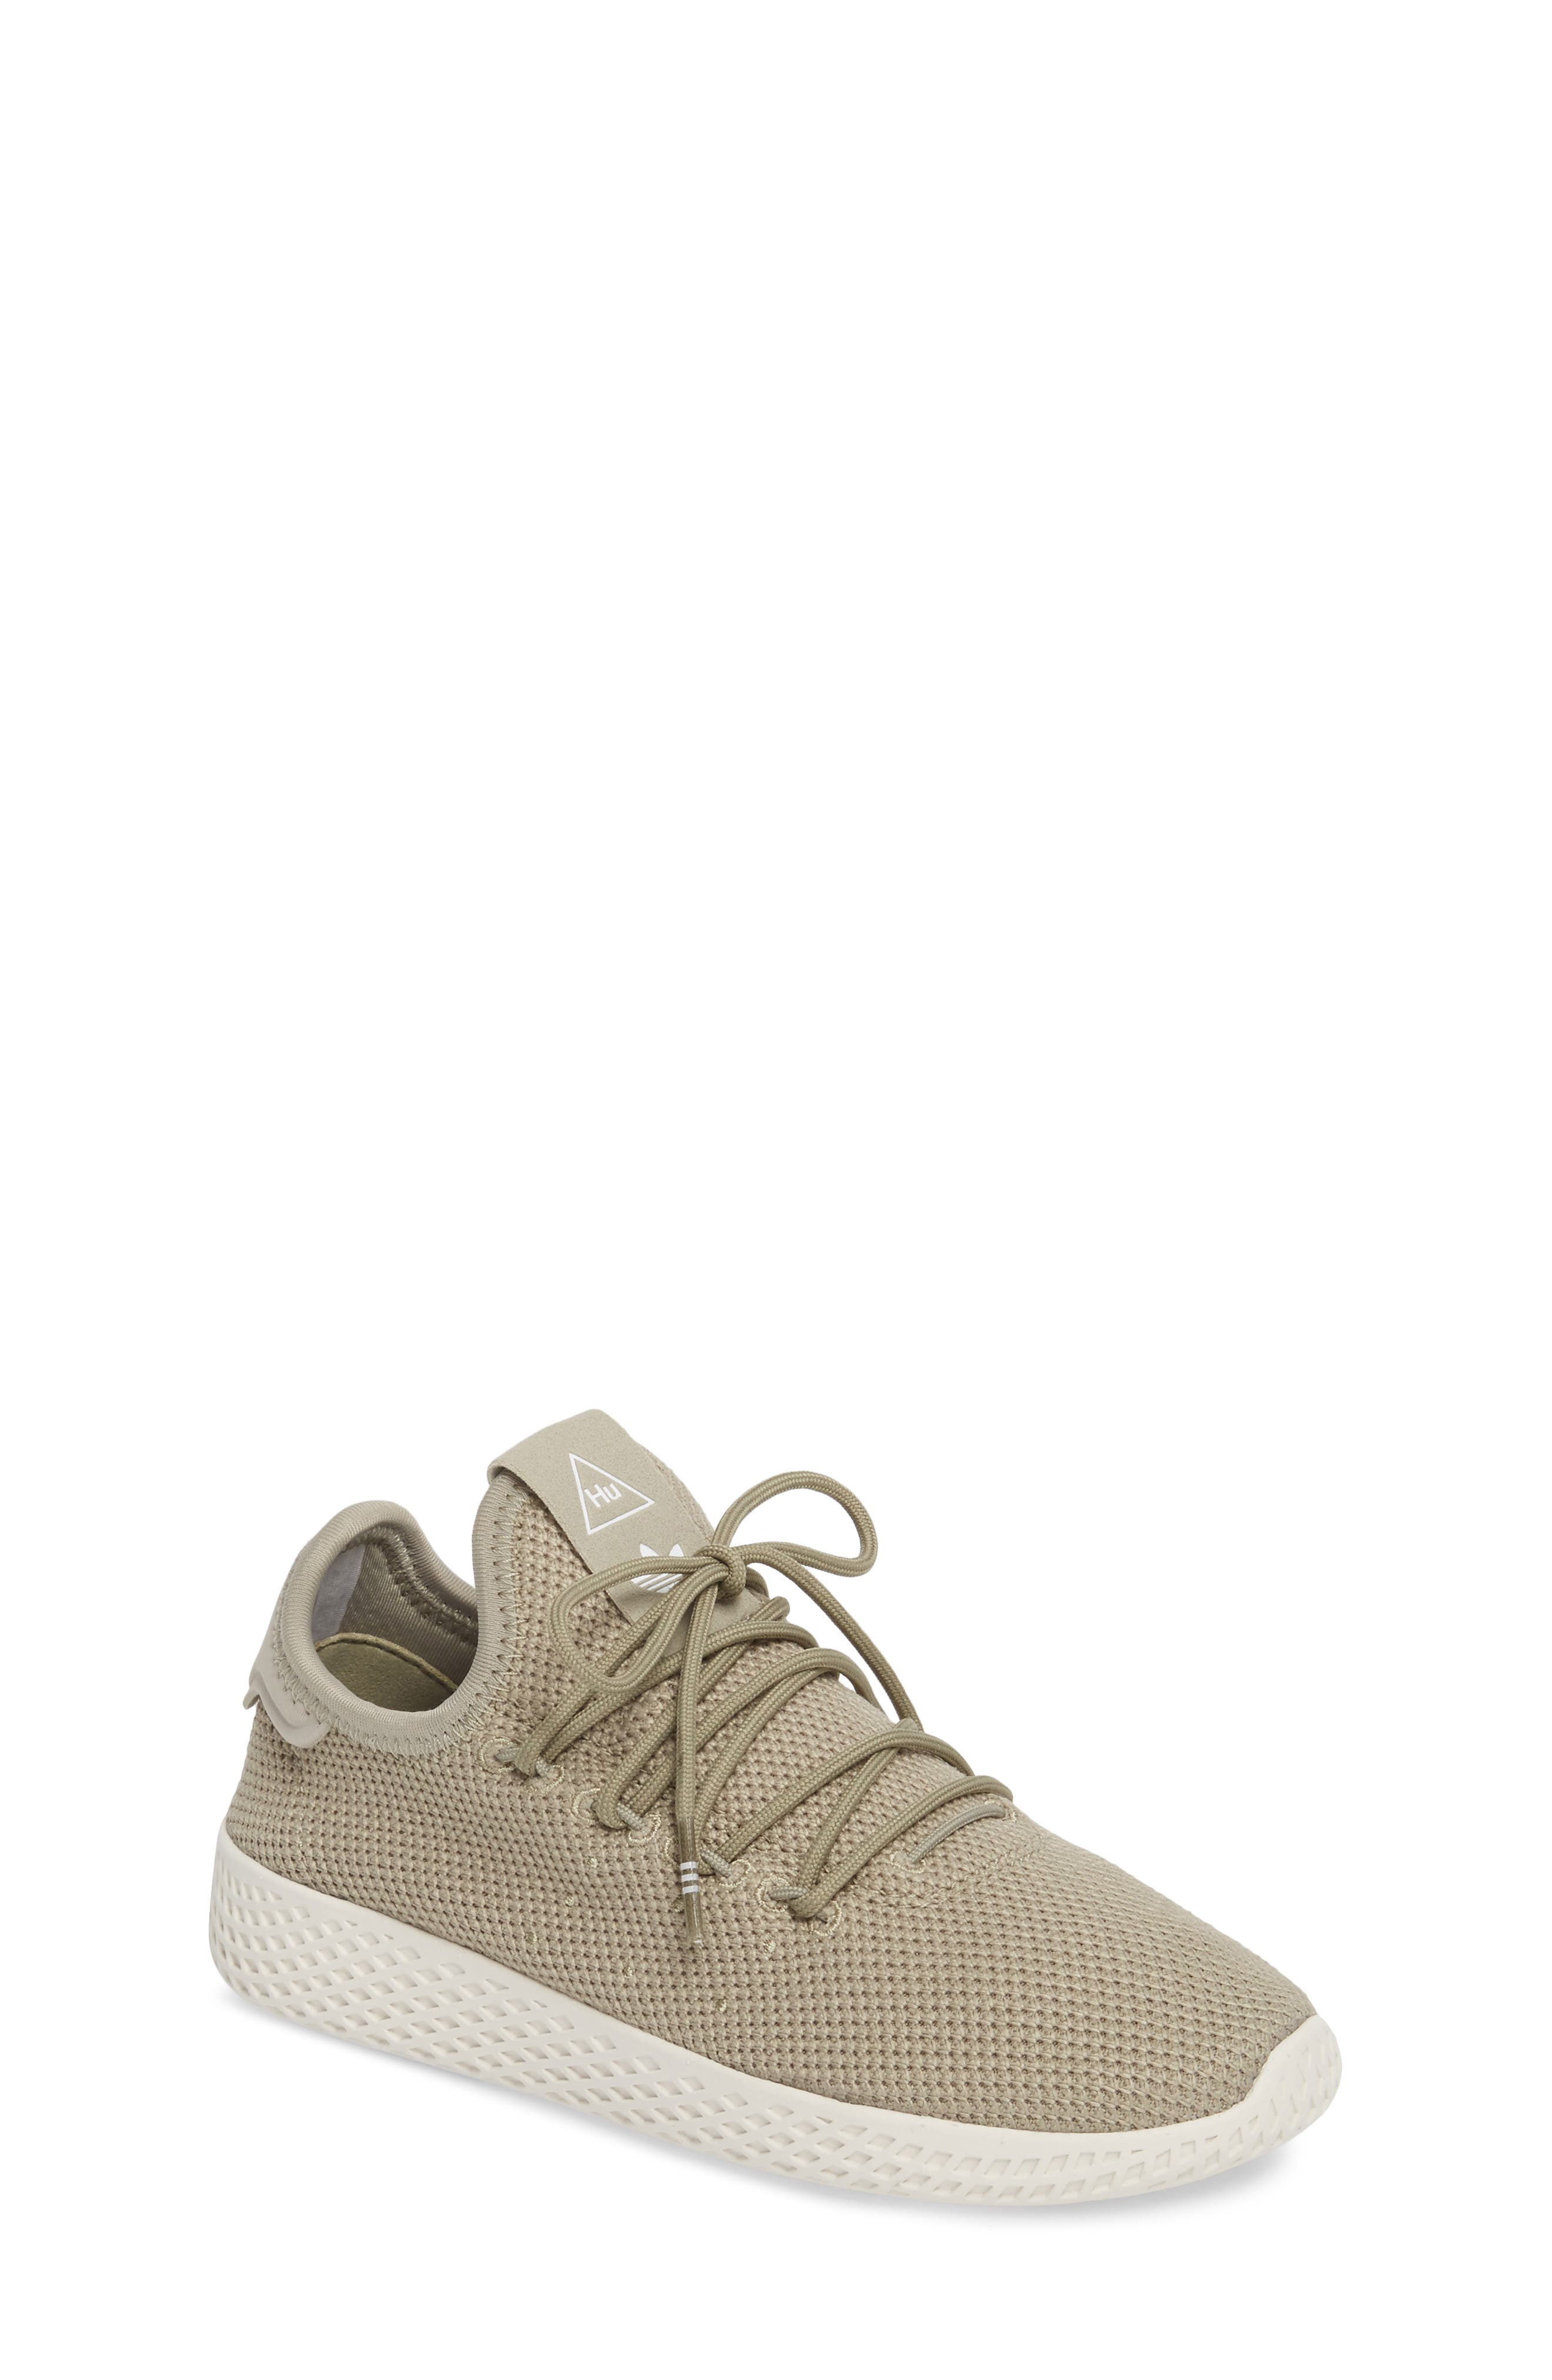 Pharrell Williams Tennis Hu Sock Sneaker,                         Main,                         color, Tech Beige/ Chalk White